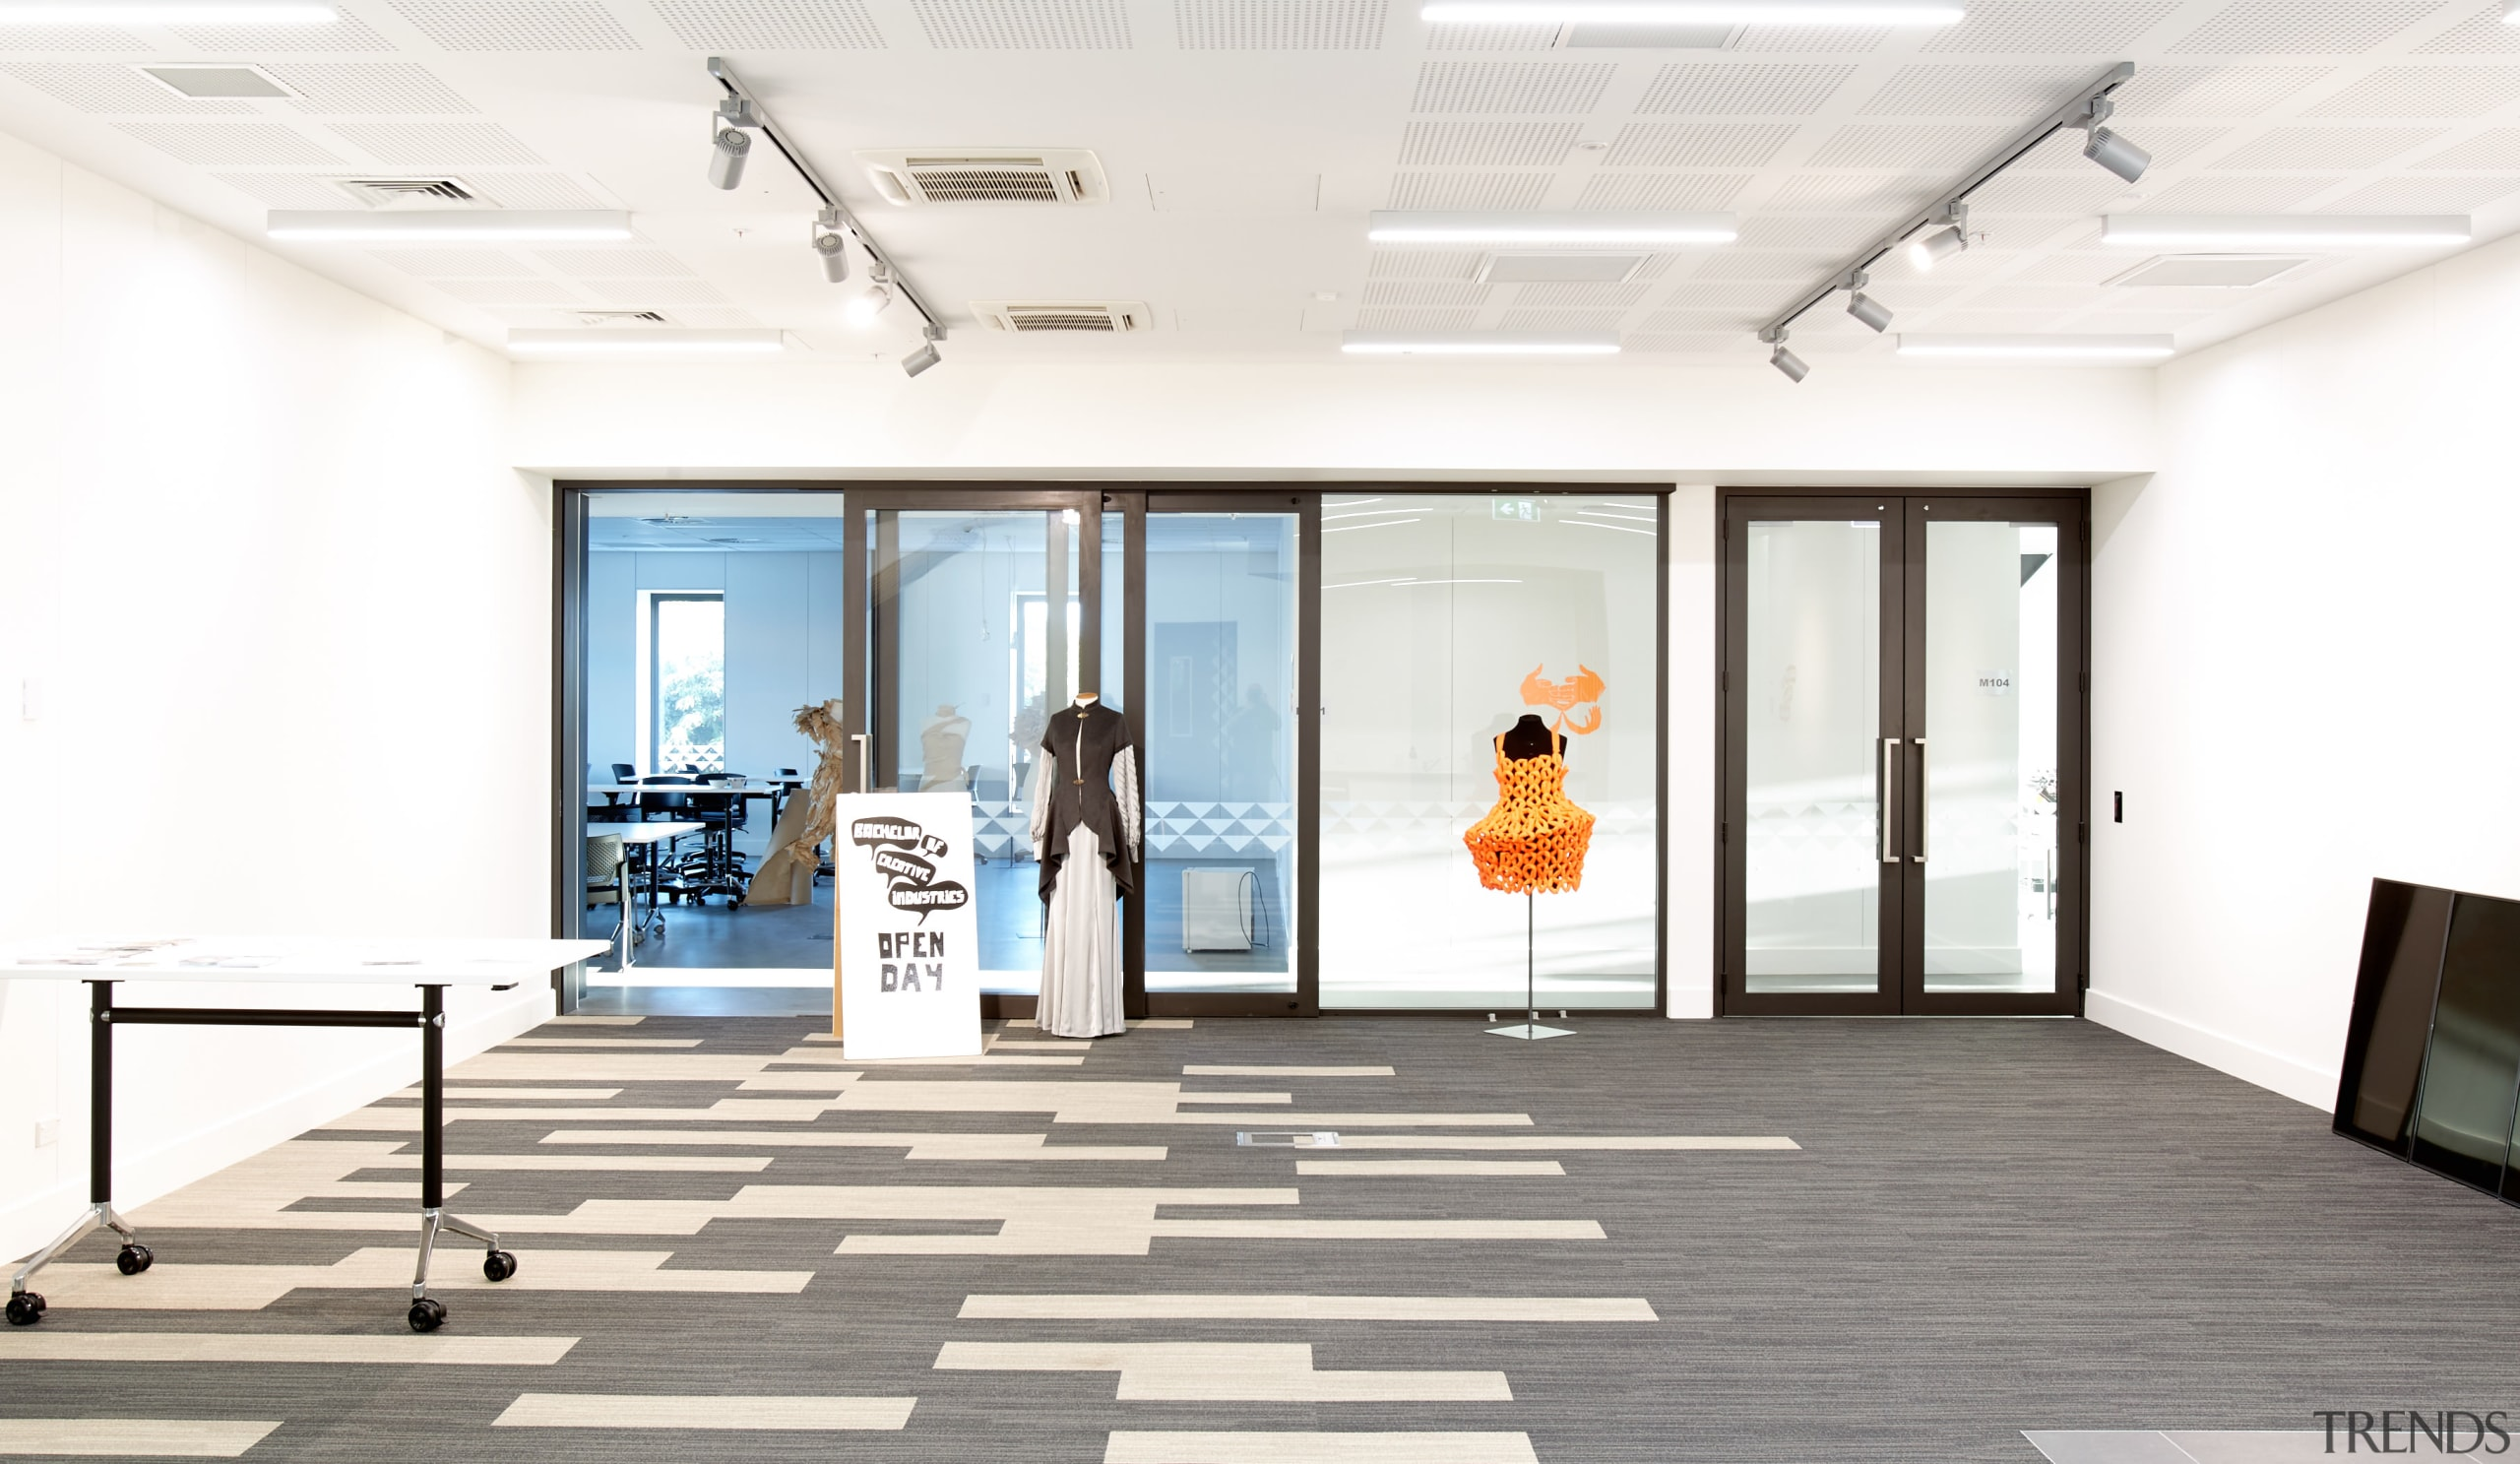 Designed by Chow Hill Architects, Te Ara o ceiling, daylighting, floor, flooring, interior design, lobby, white